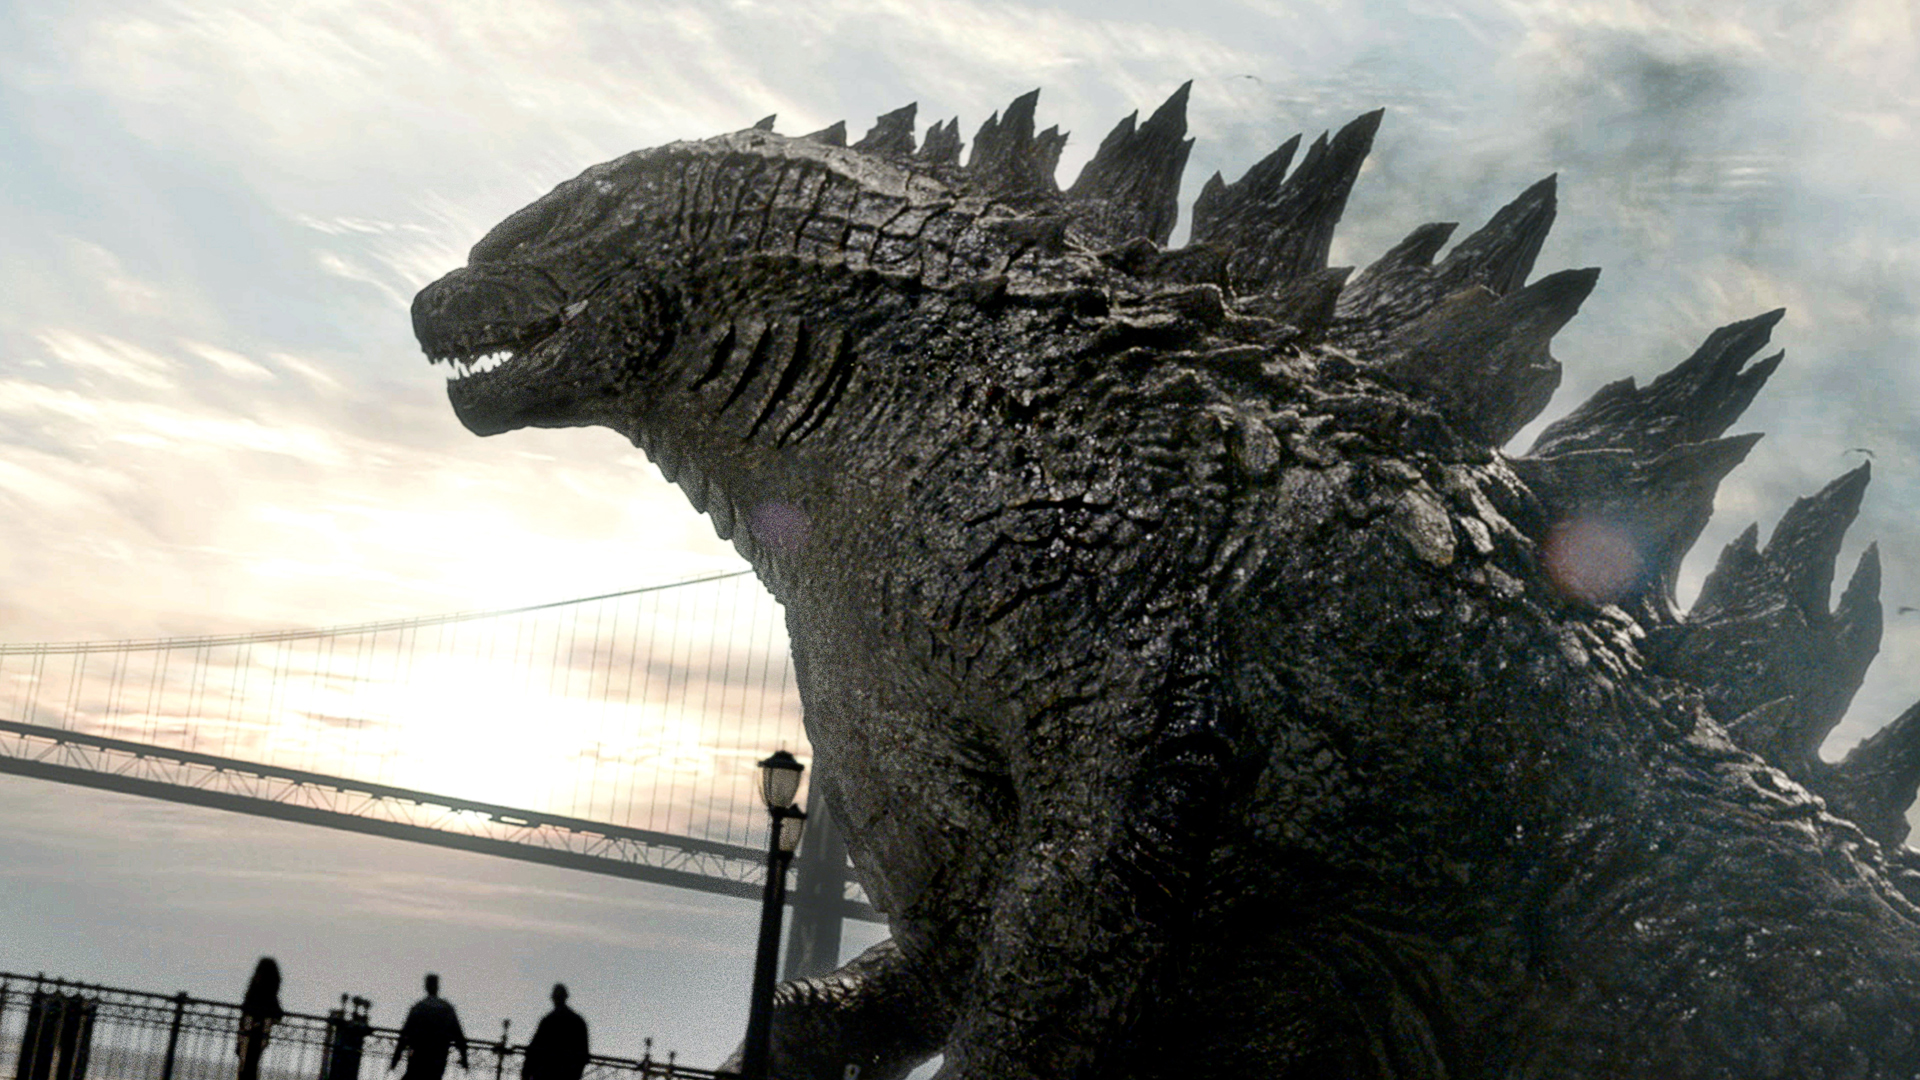 godzilla picture 2014 movie hd 1920x1080 1080p wallpaper and 1920x1080